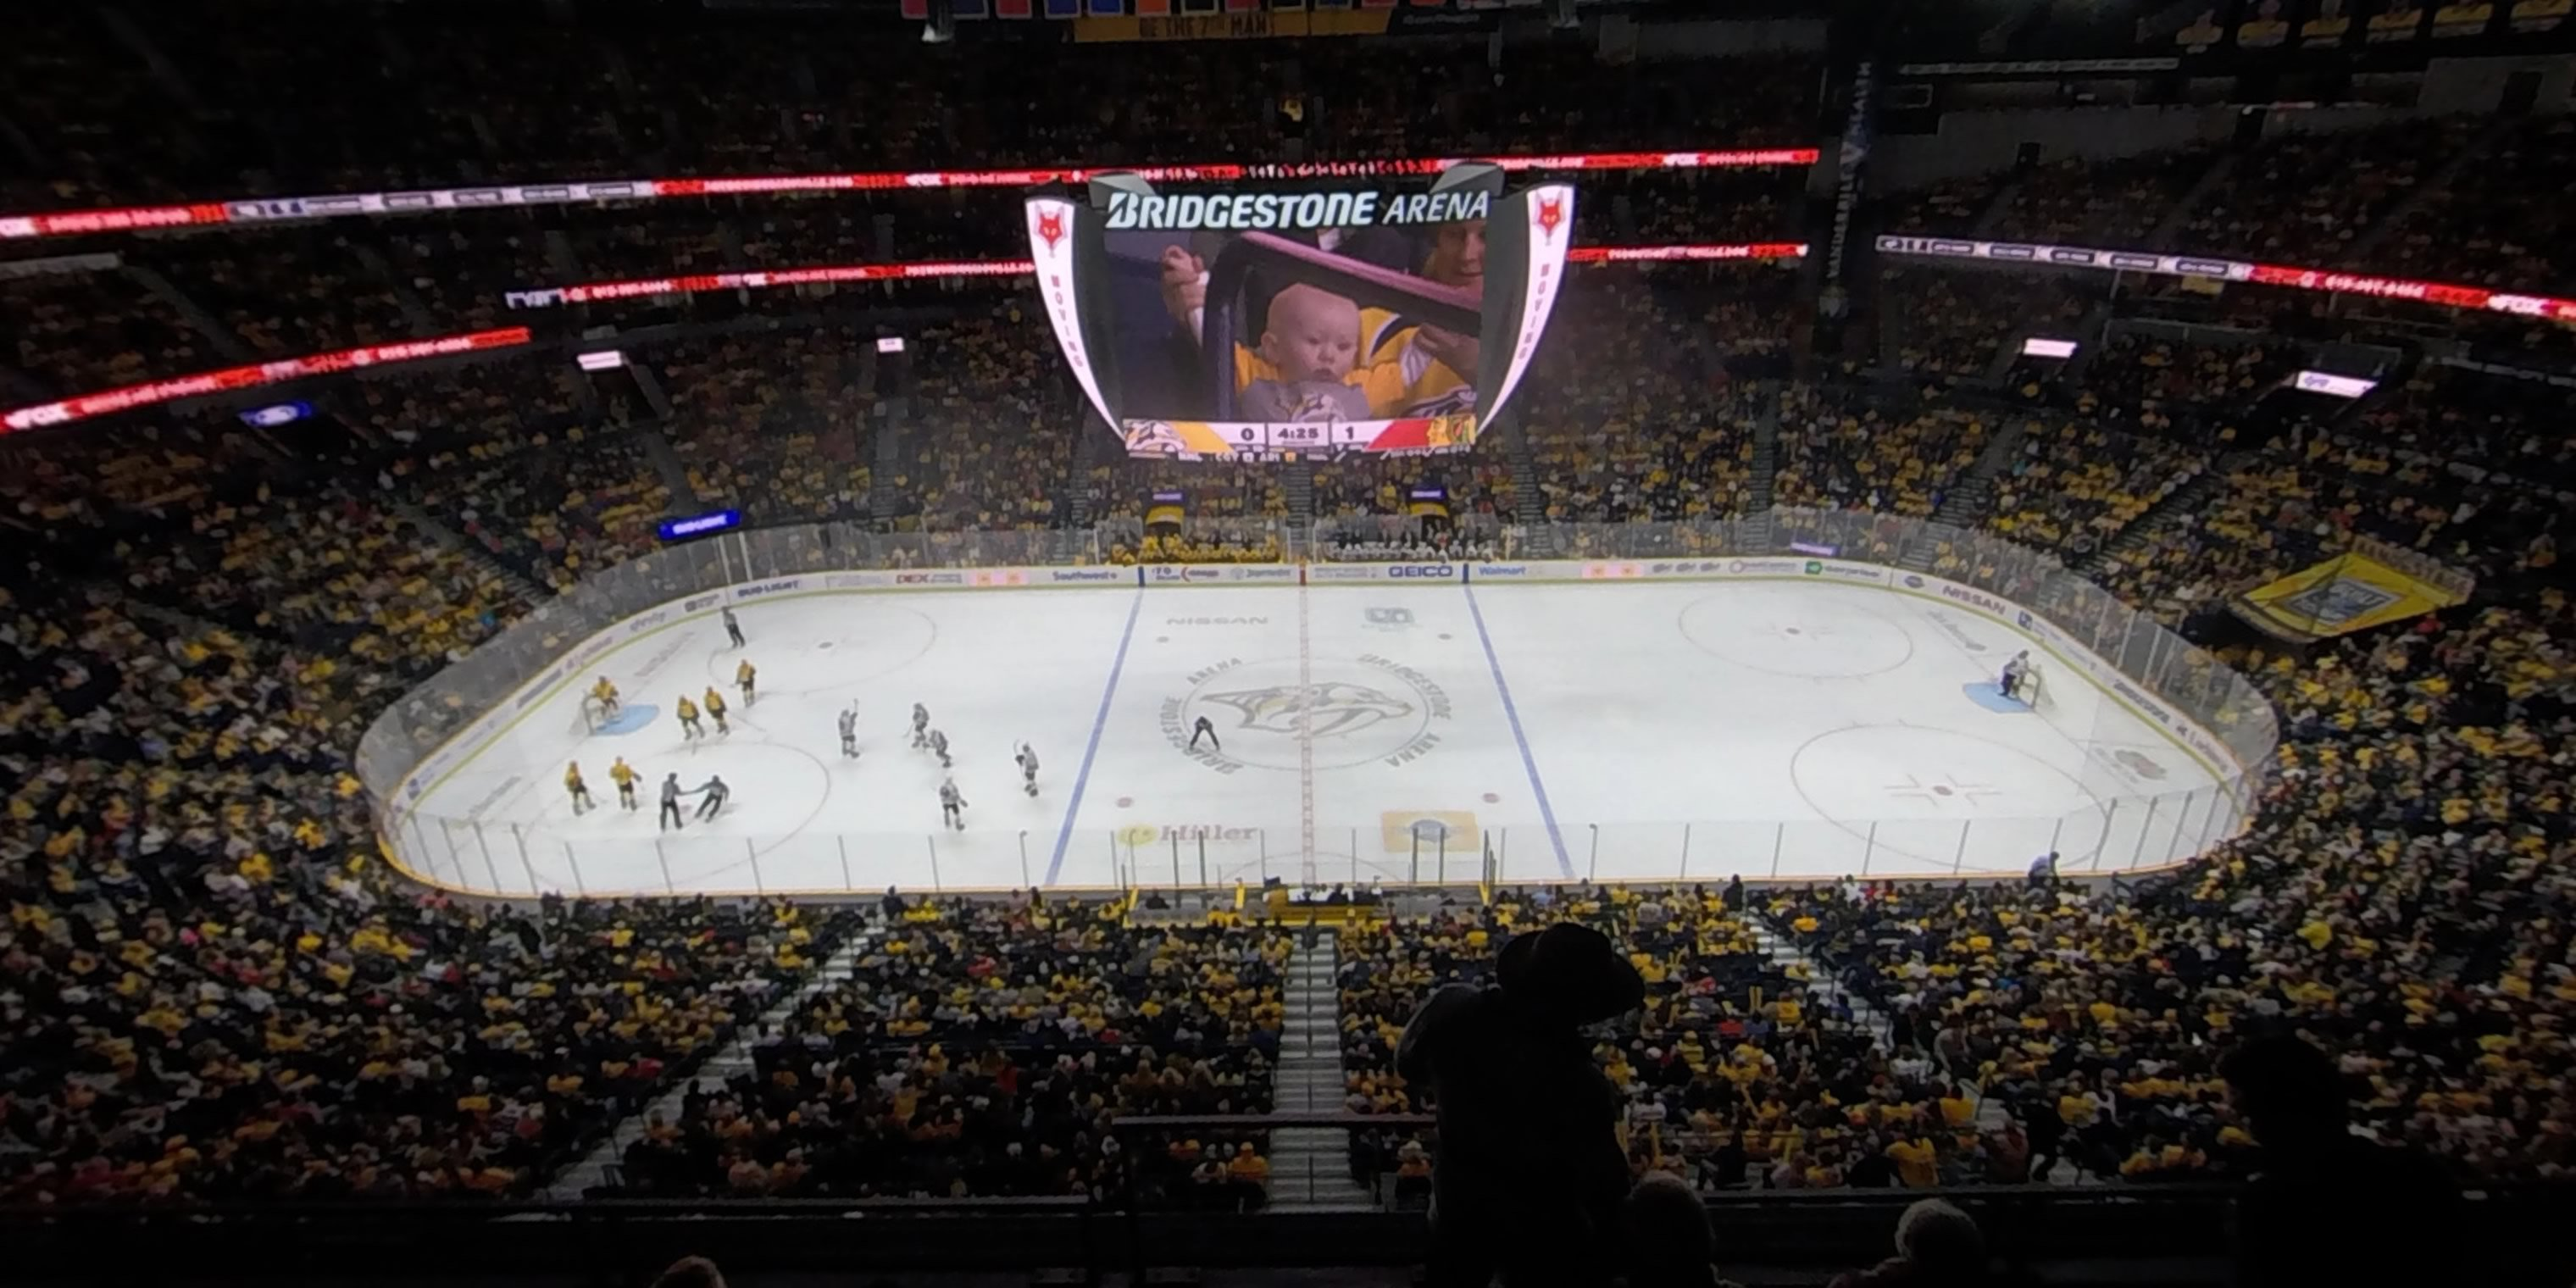 360° Photo From Bridgestone Arena Section 310